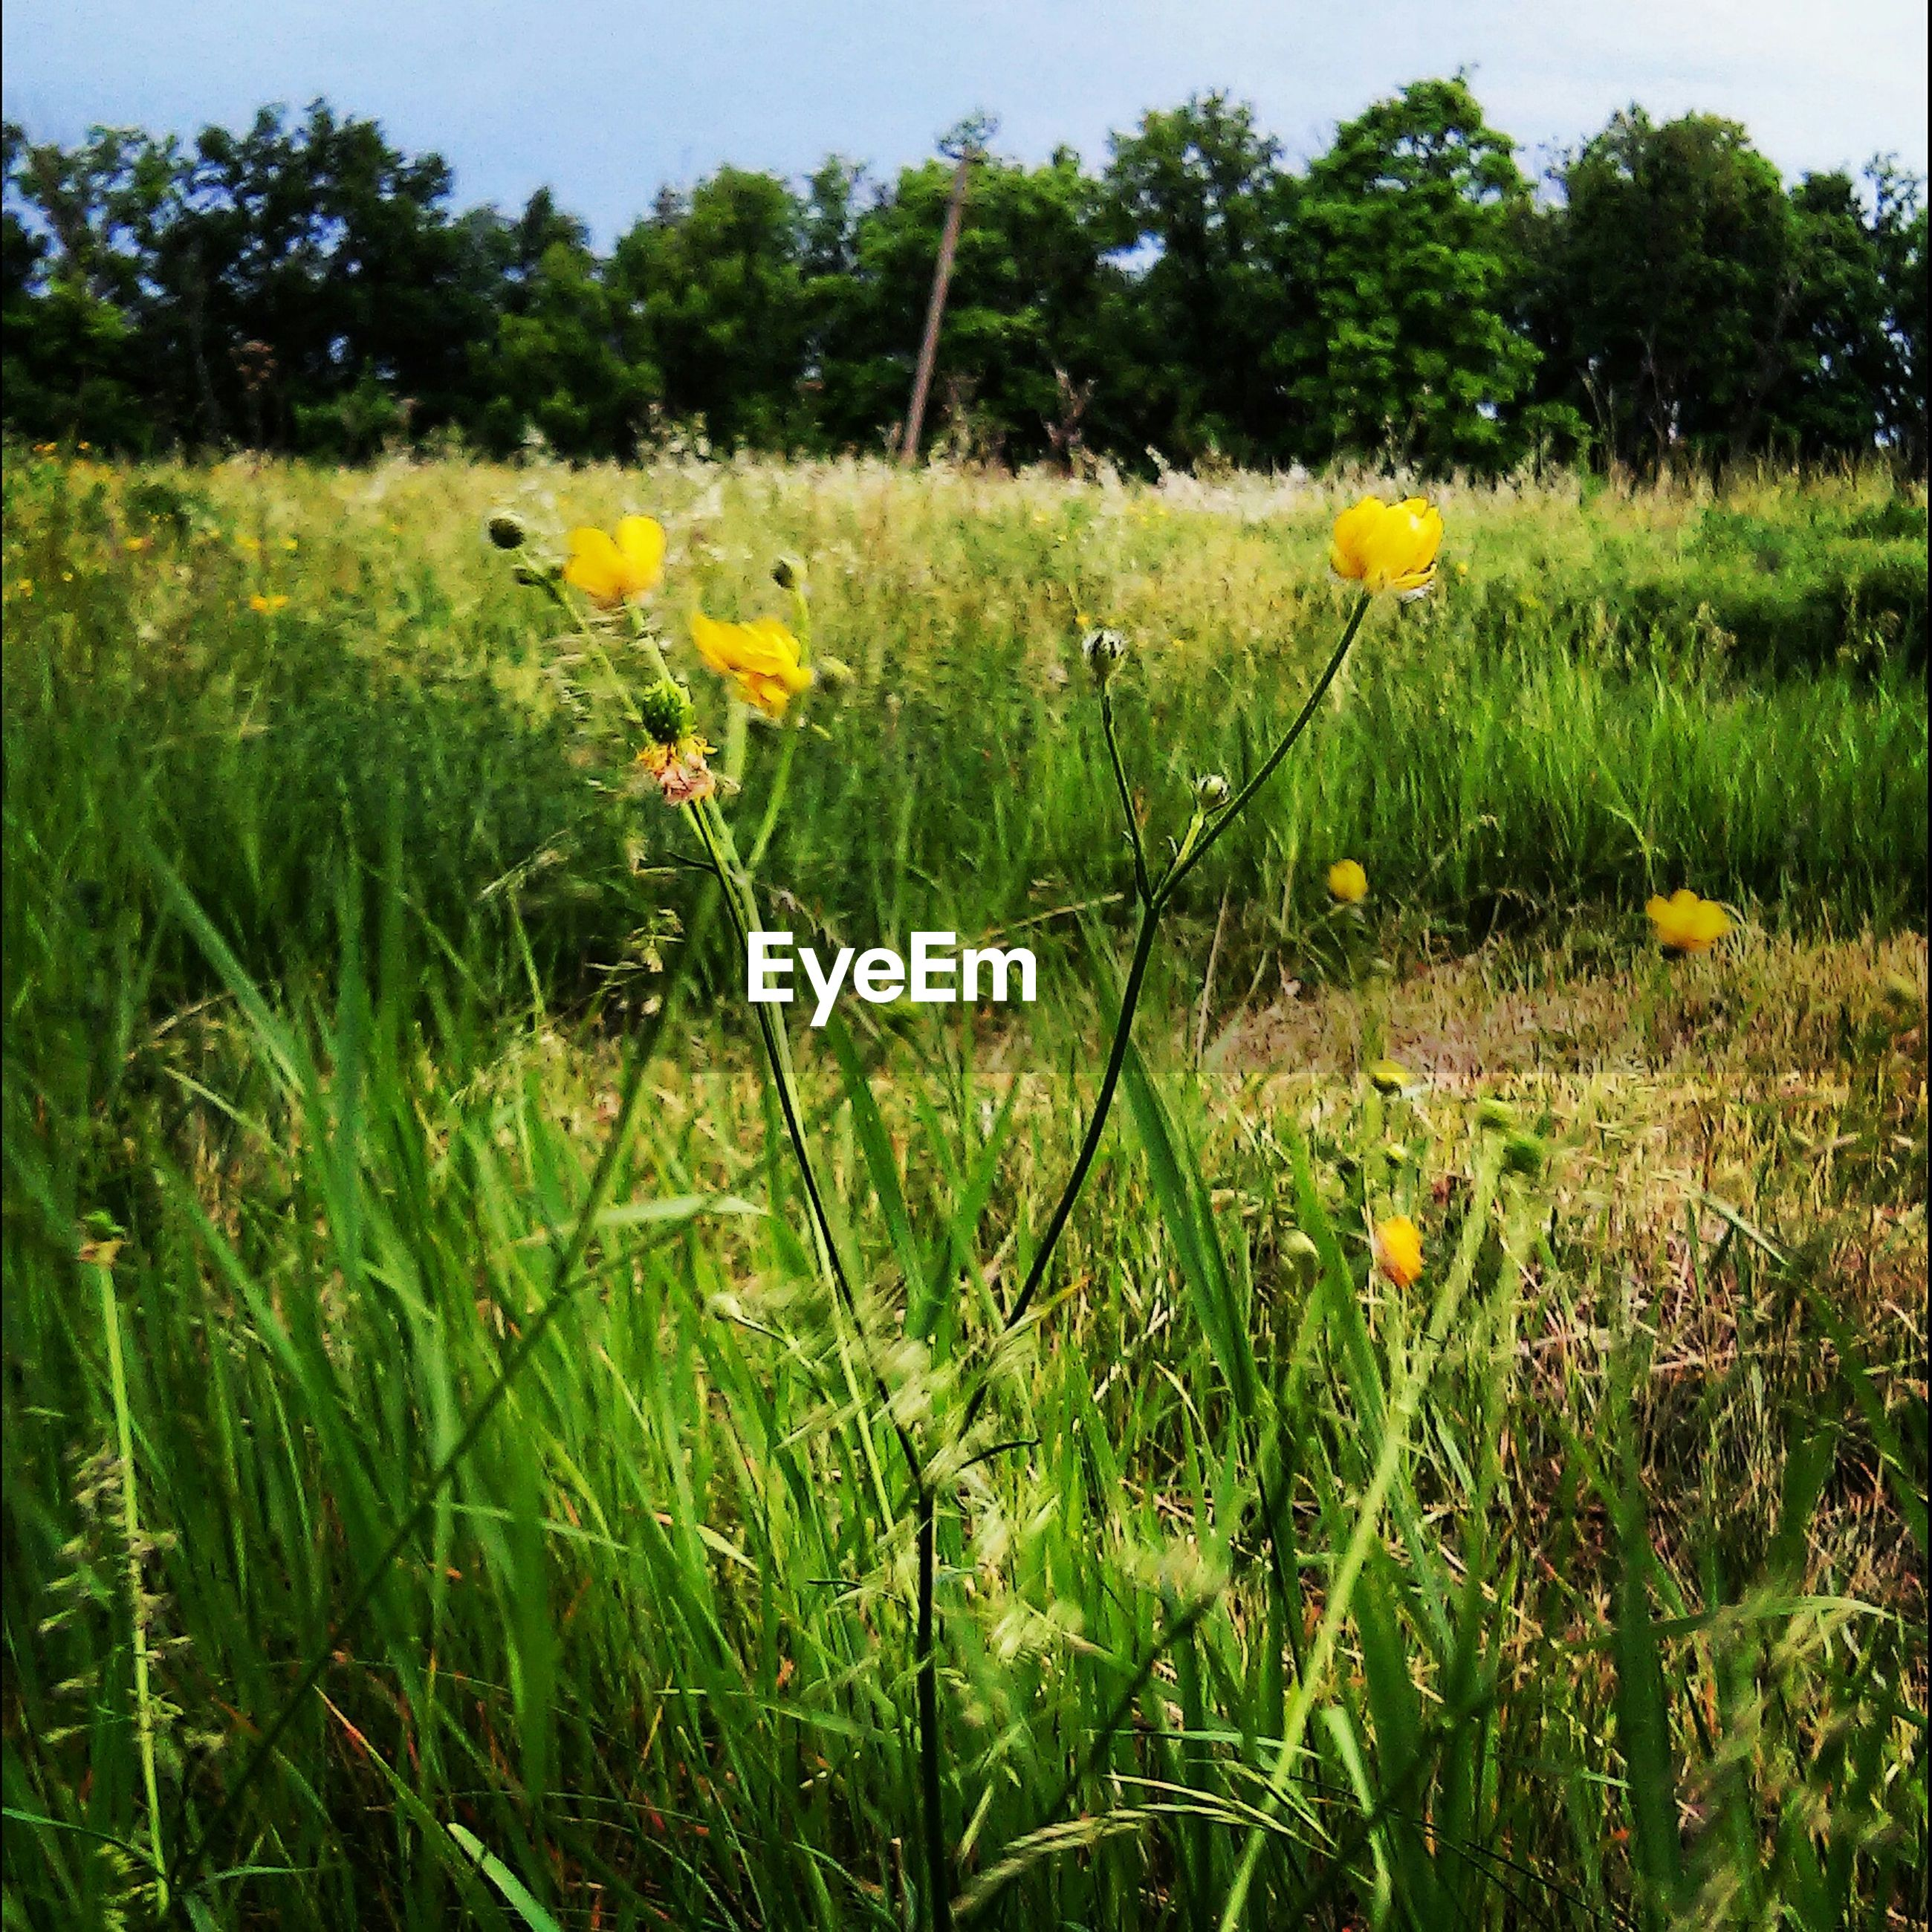 flower, growth, yellow, field, grass, freshness, fragility, plant, beauty in nature, nature, blooming, green color, stem, petal, in bloom, wildflower, flower head, day, tranquility, meadow